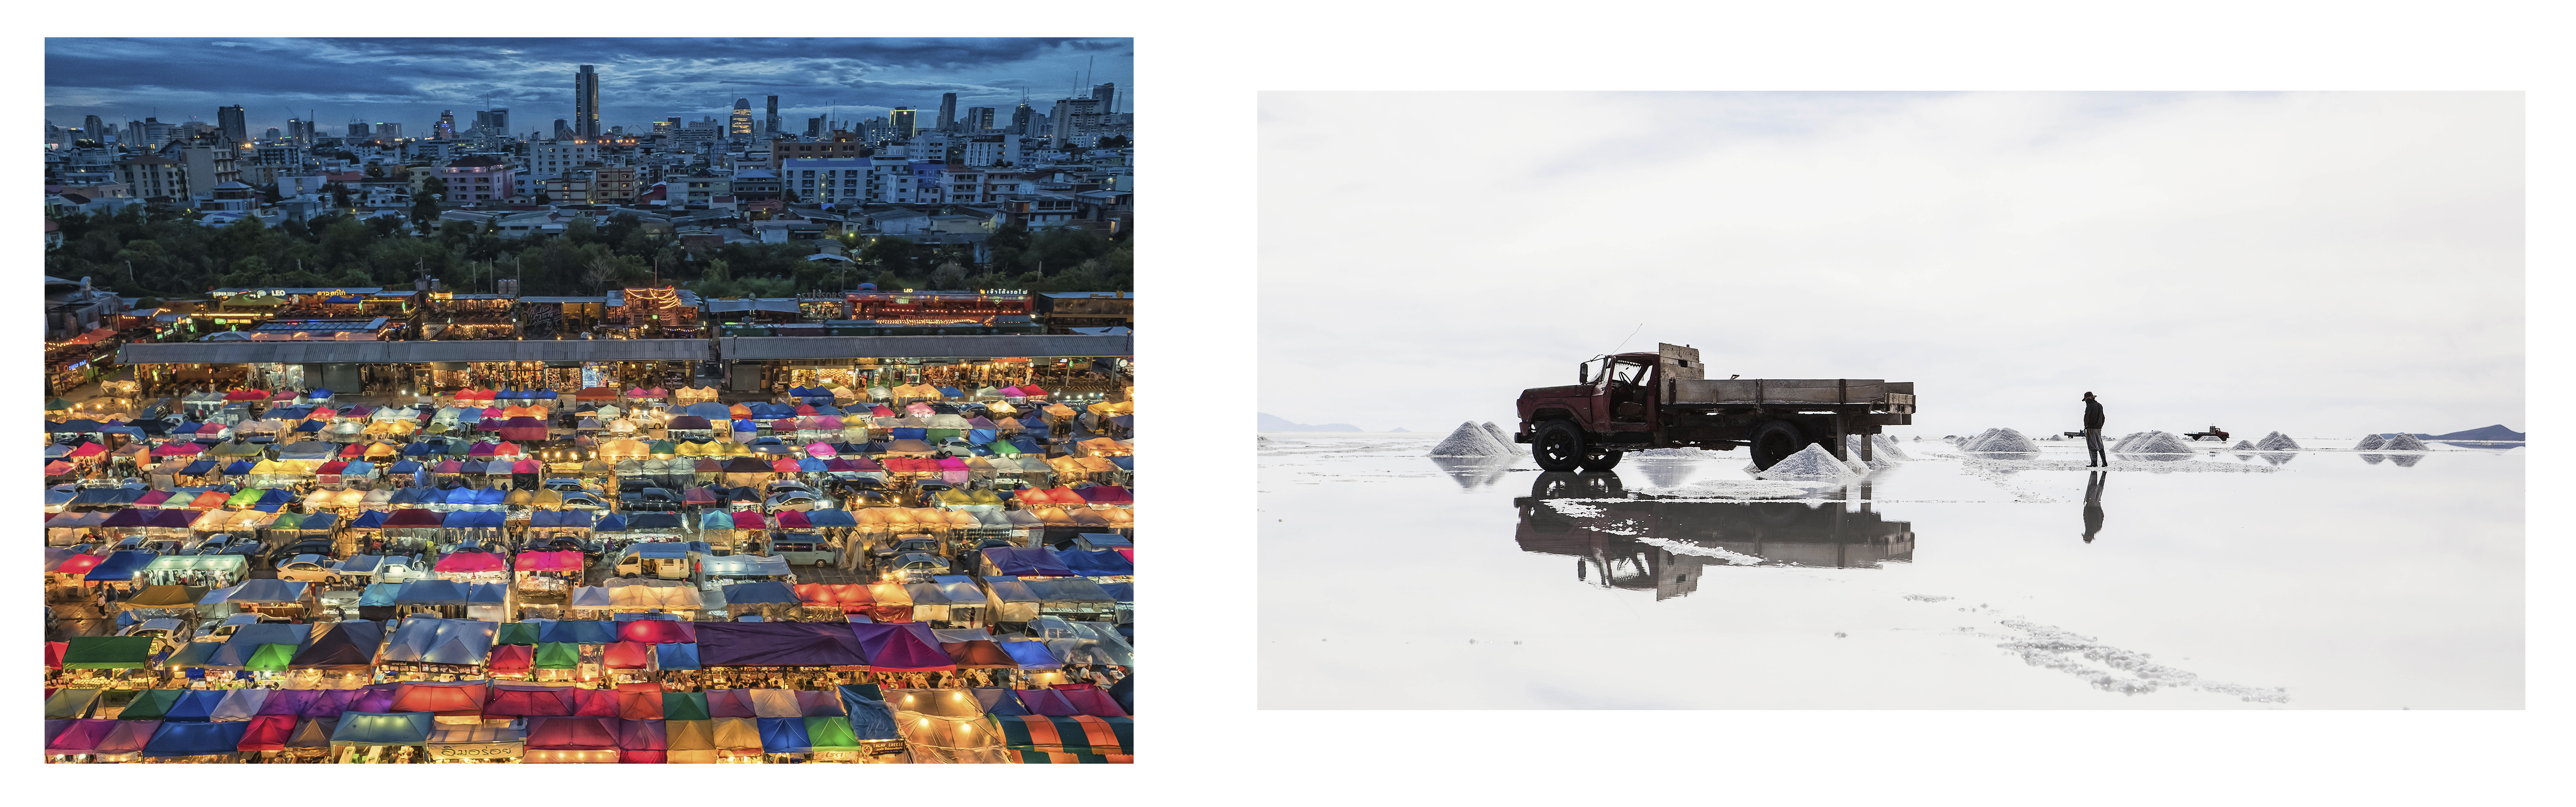 "Left: ""Colorful Market"" – Teo Liak Song; Right: ""Üyuni"" – Javier Arcenillas"